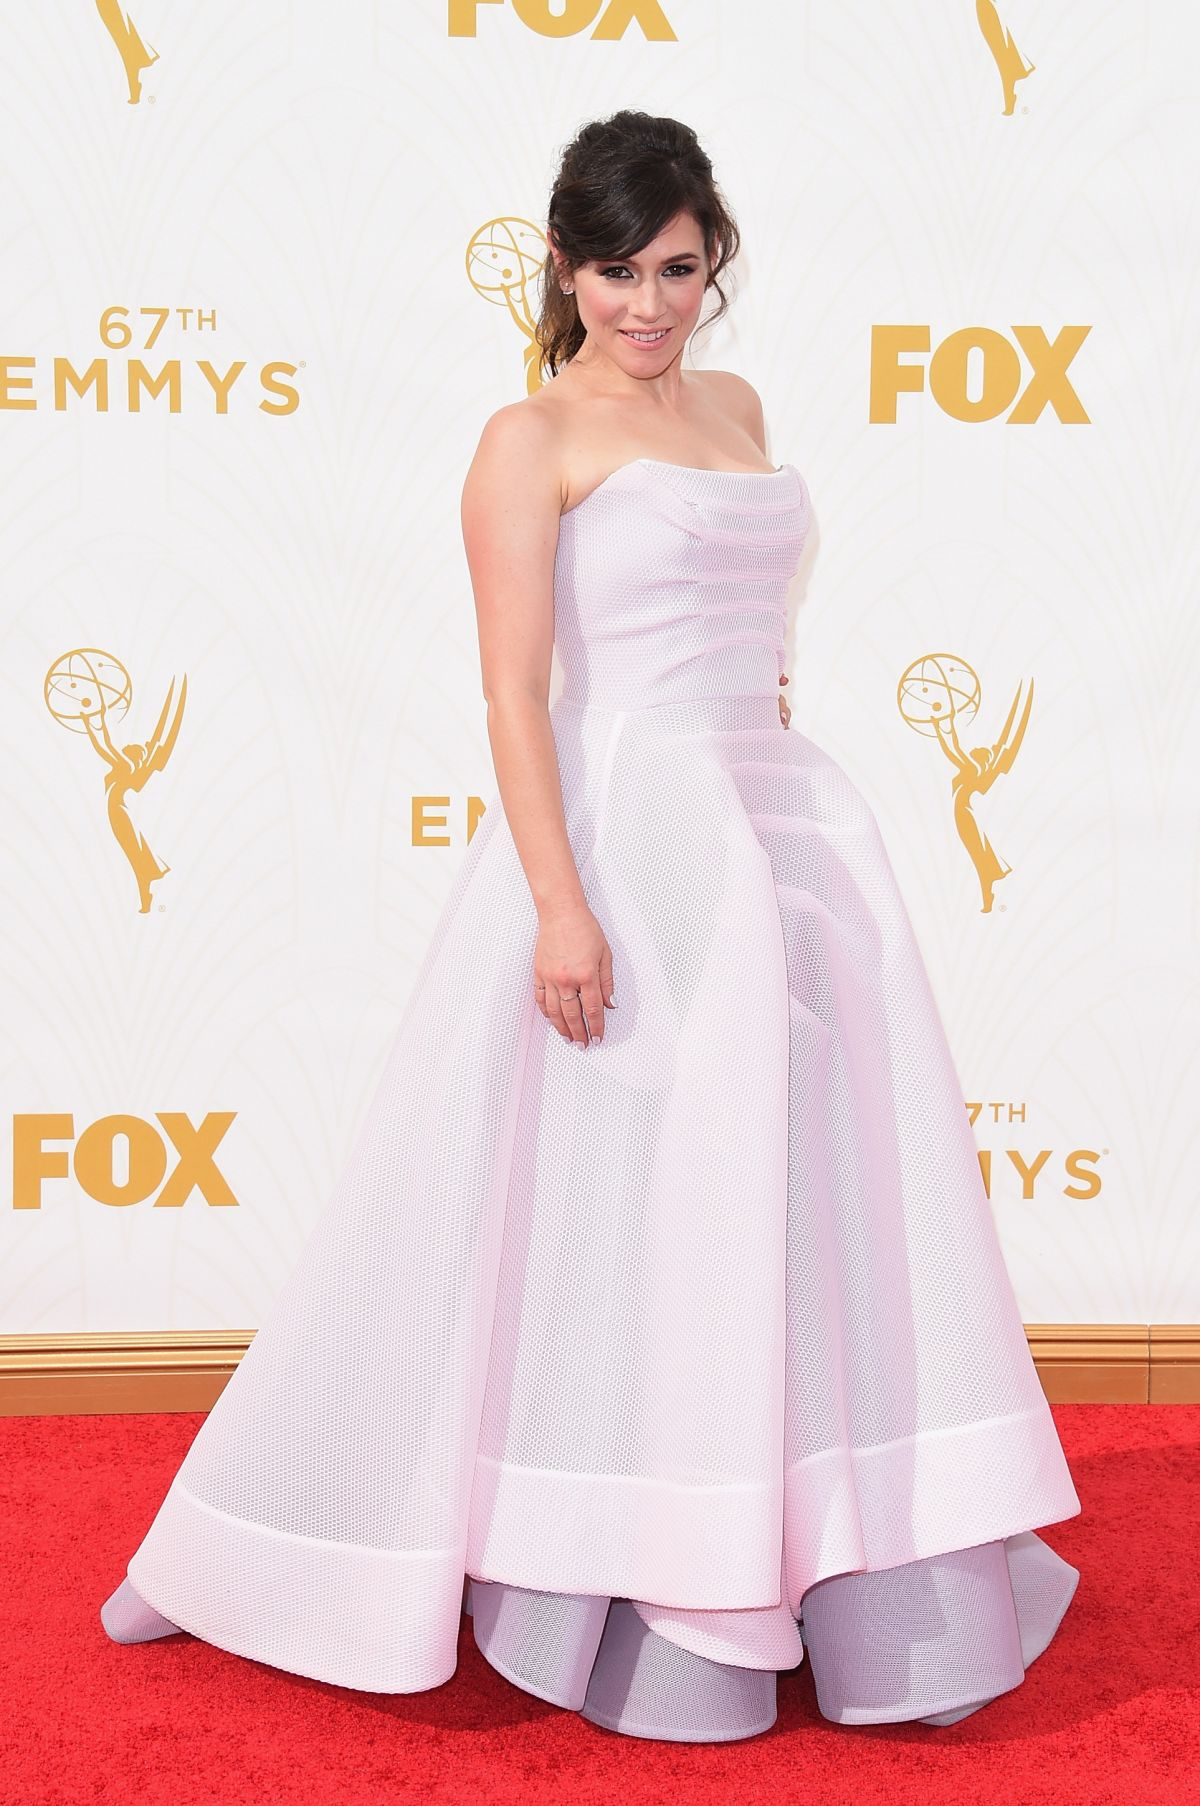 YAEL STONE at 2015 Emmy Awards in Los Angeles 09/20/2015